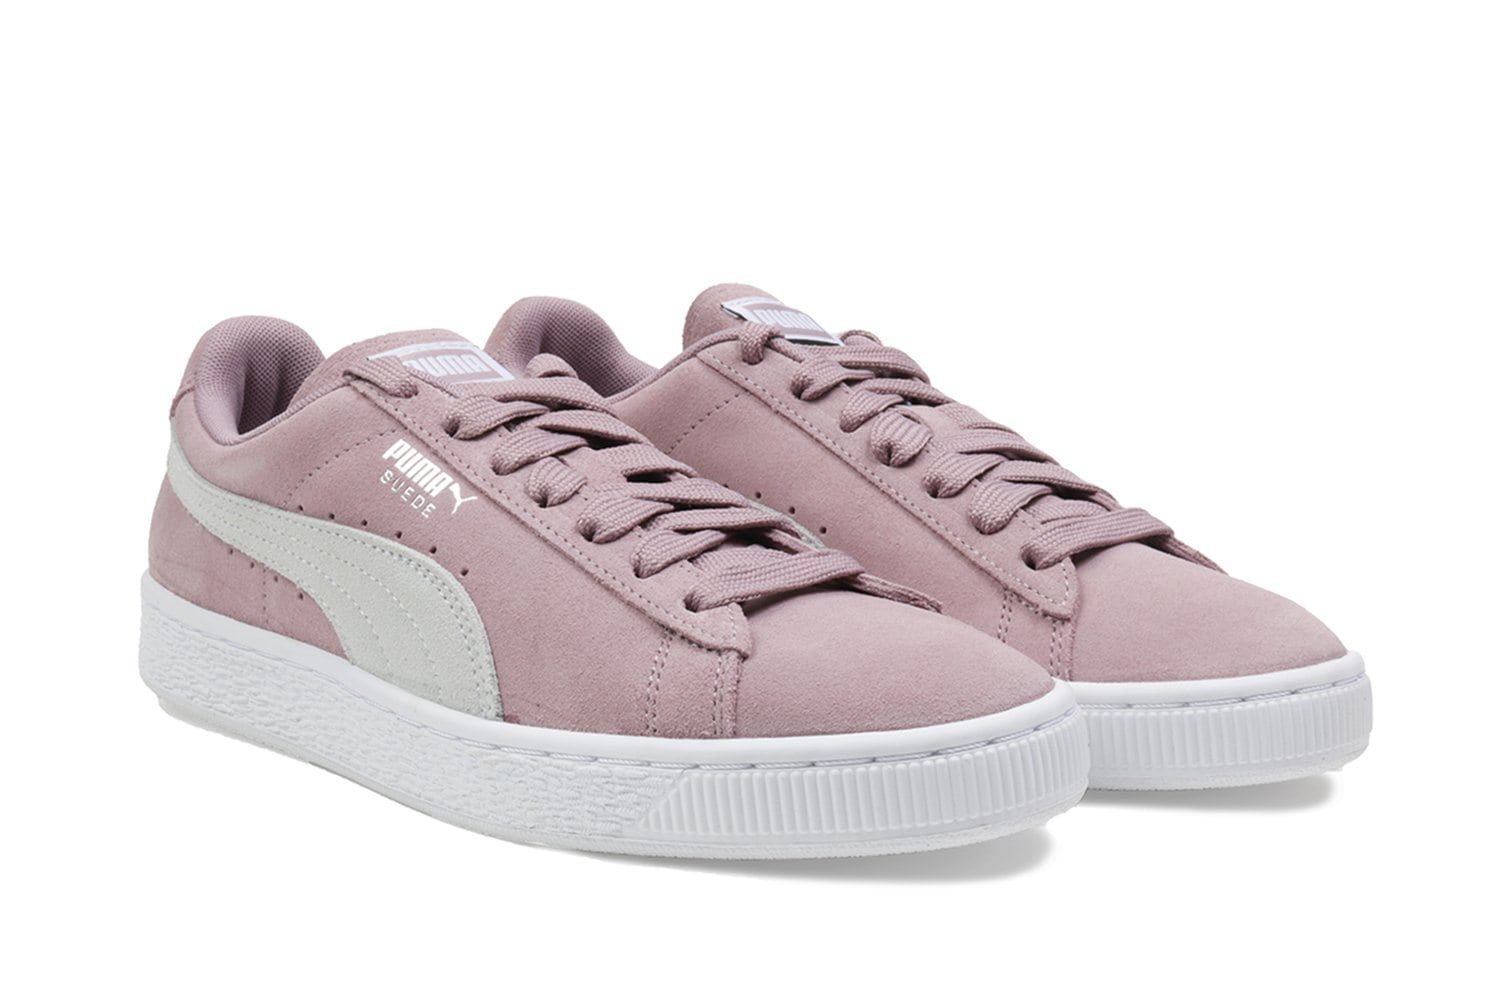 best website dab4f 2dd11 PUMA SUEDE CLASSIC WN'S - 355462-88